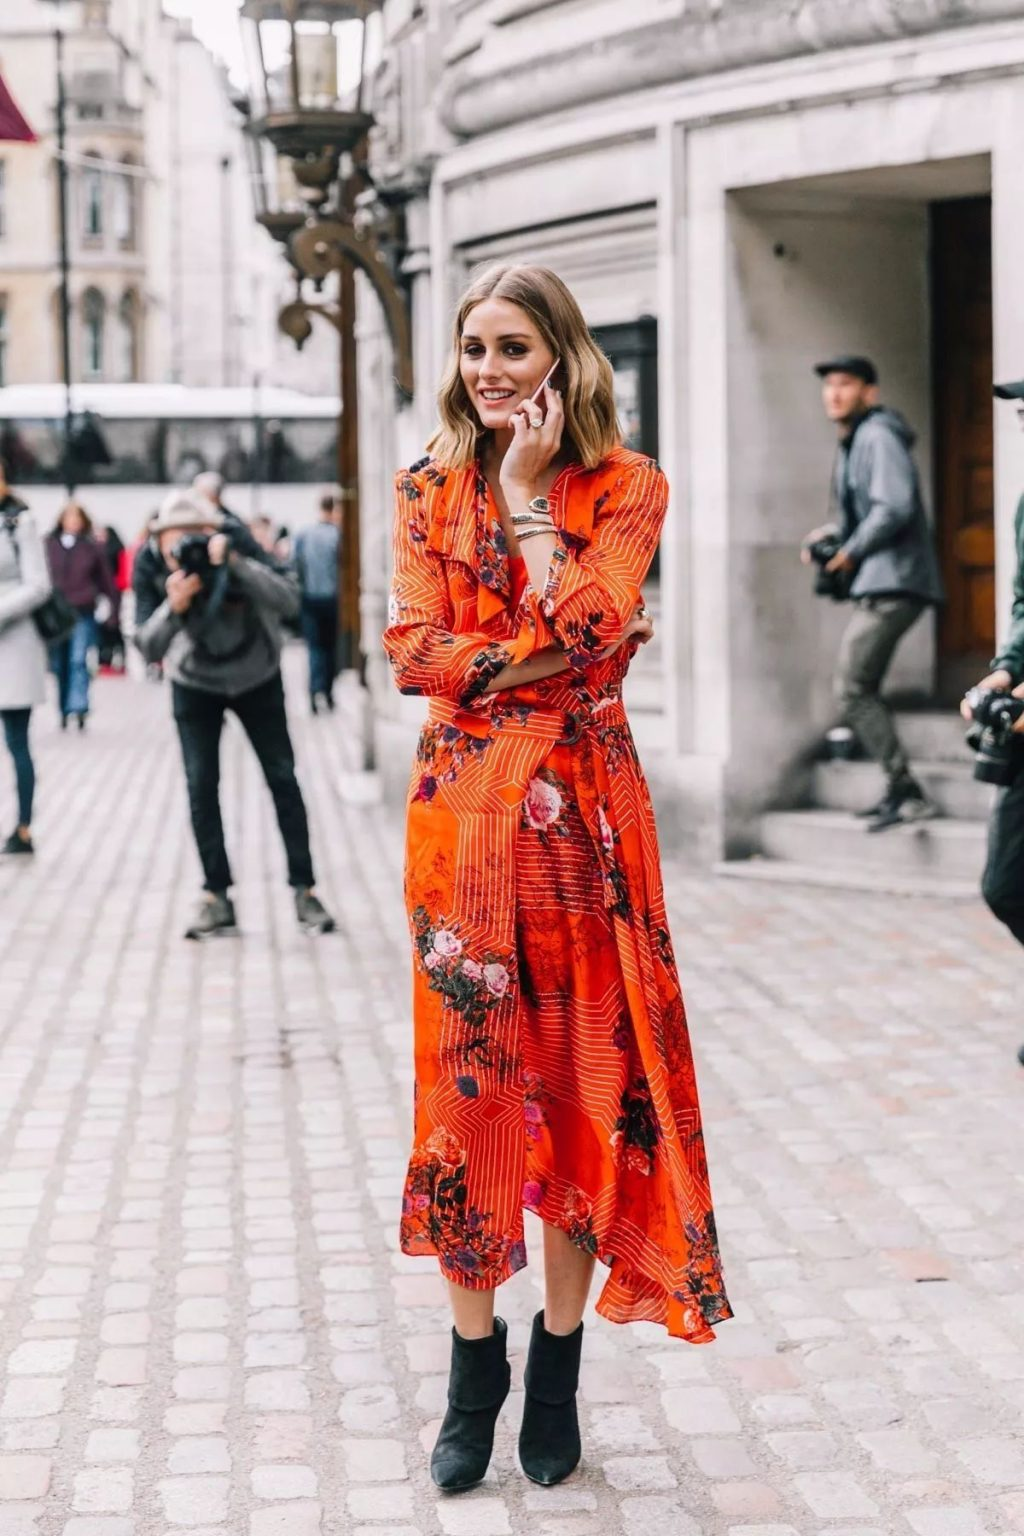 Olivia Palermo taalking on phone